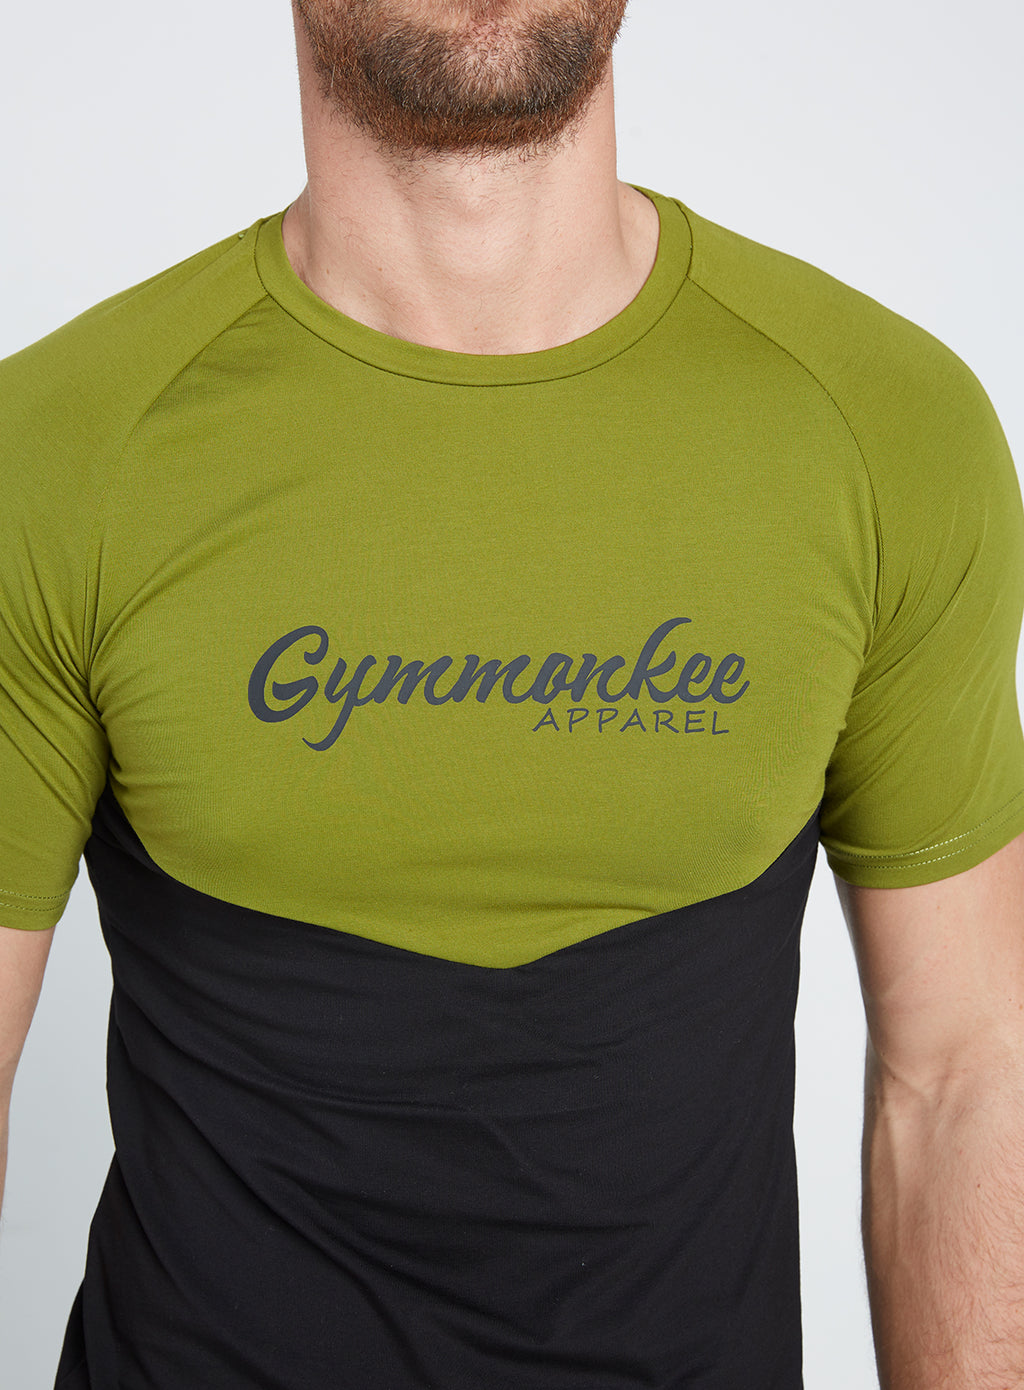 Gym Monkee - Black and Khaki Tee CHEST